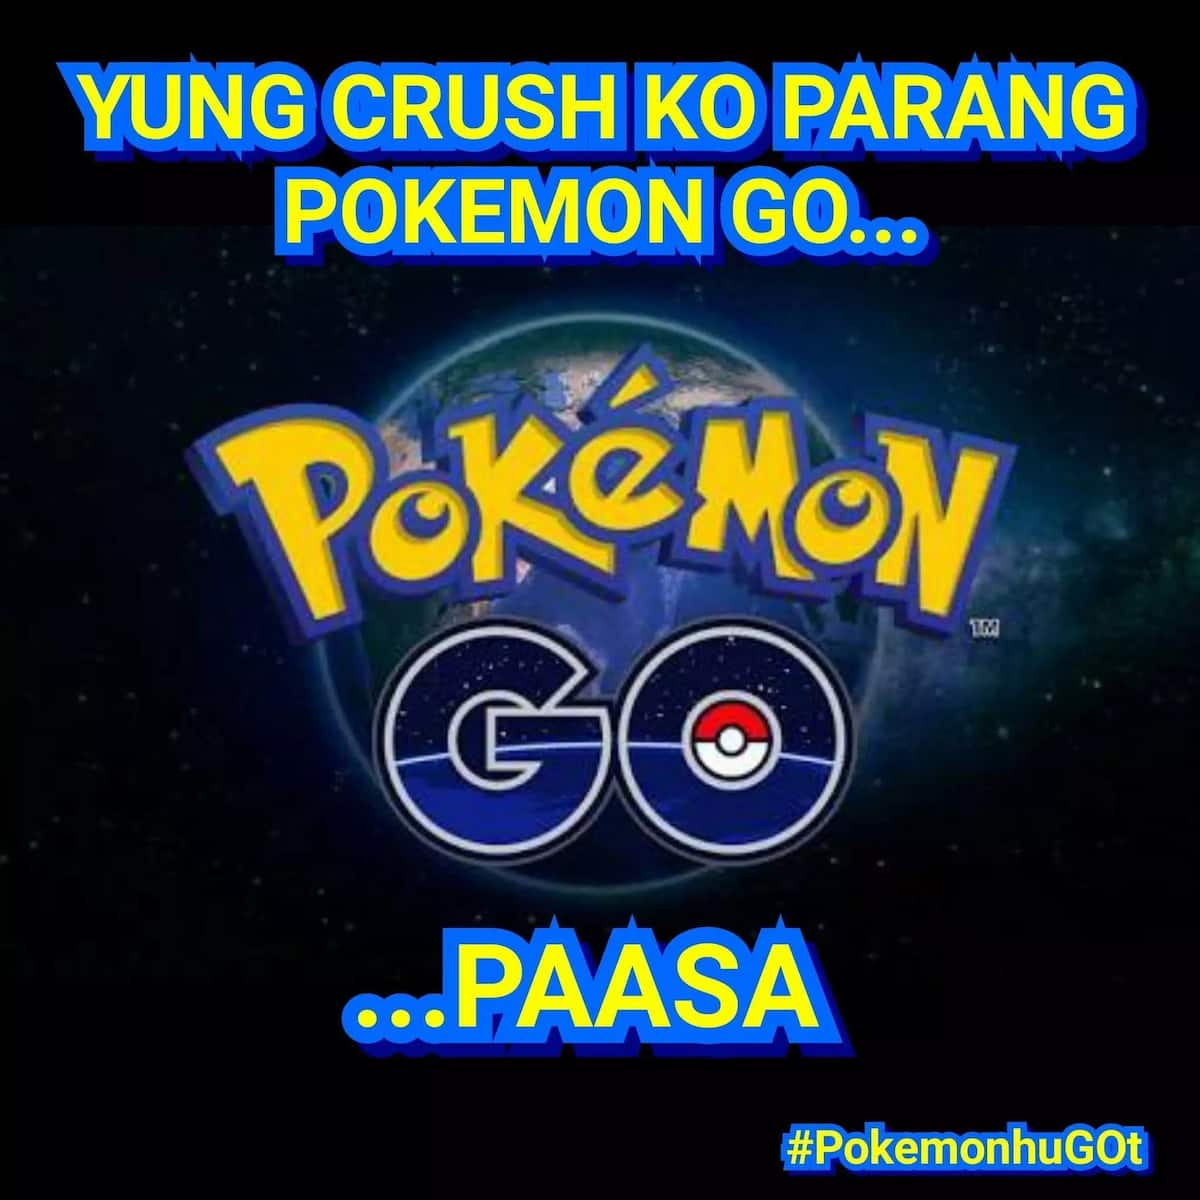 10 Pokemon GO memes that every pinoy gamer can relate to